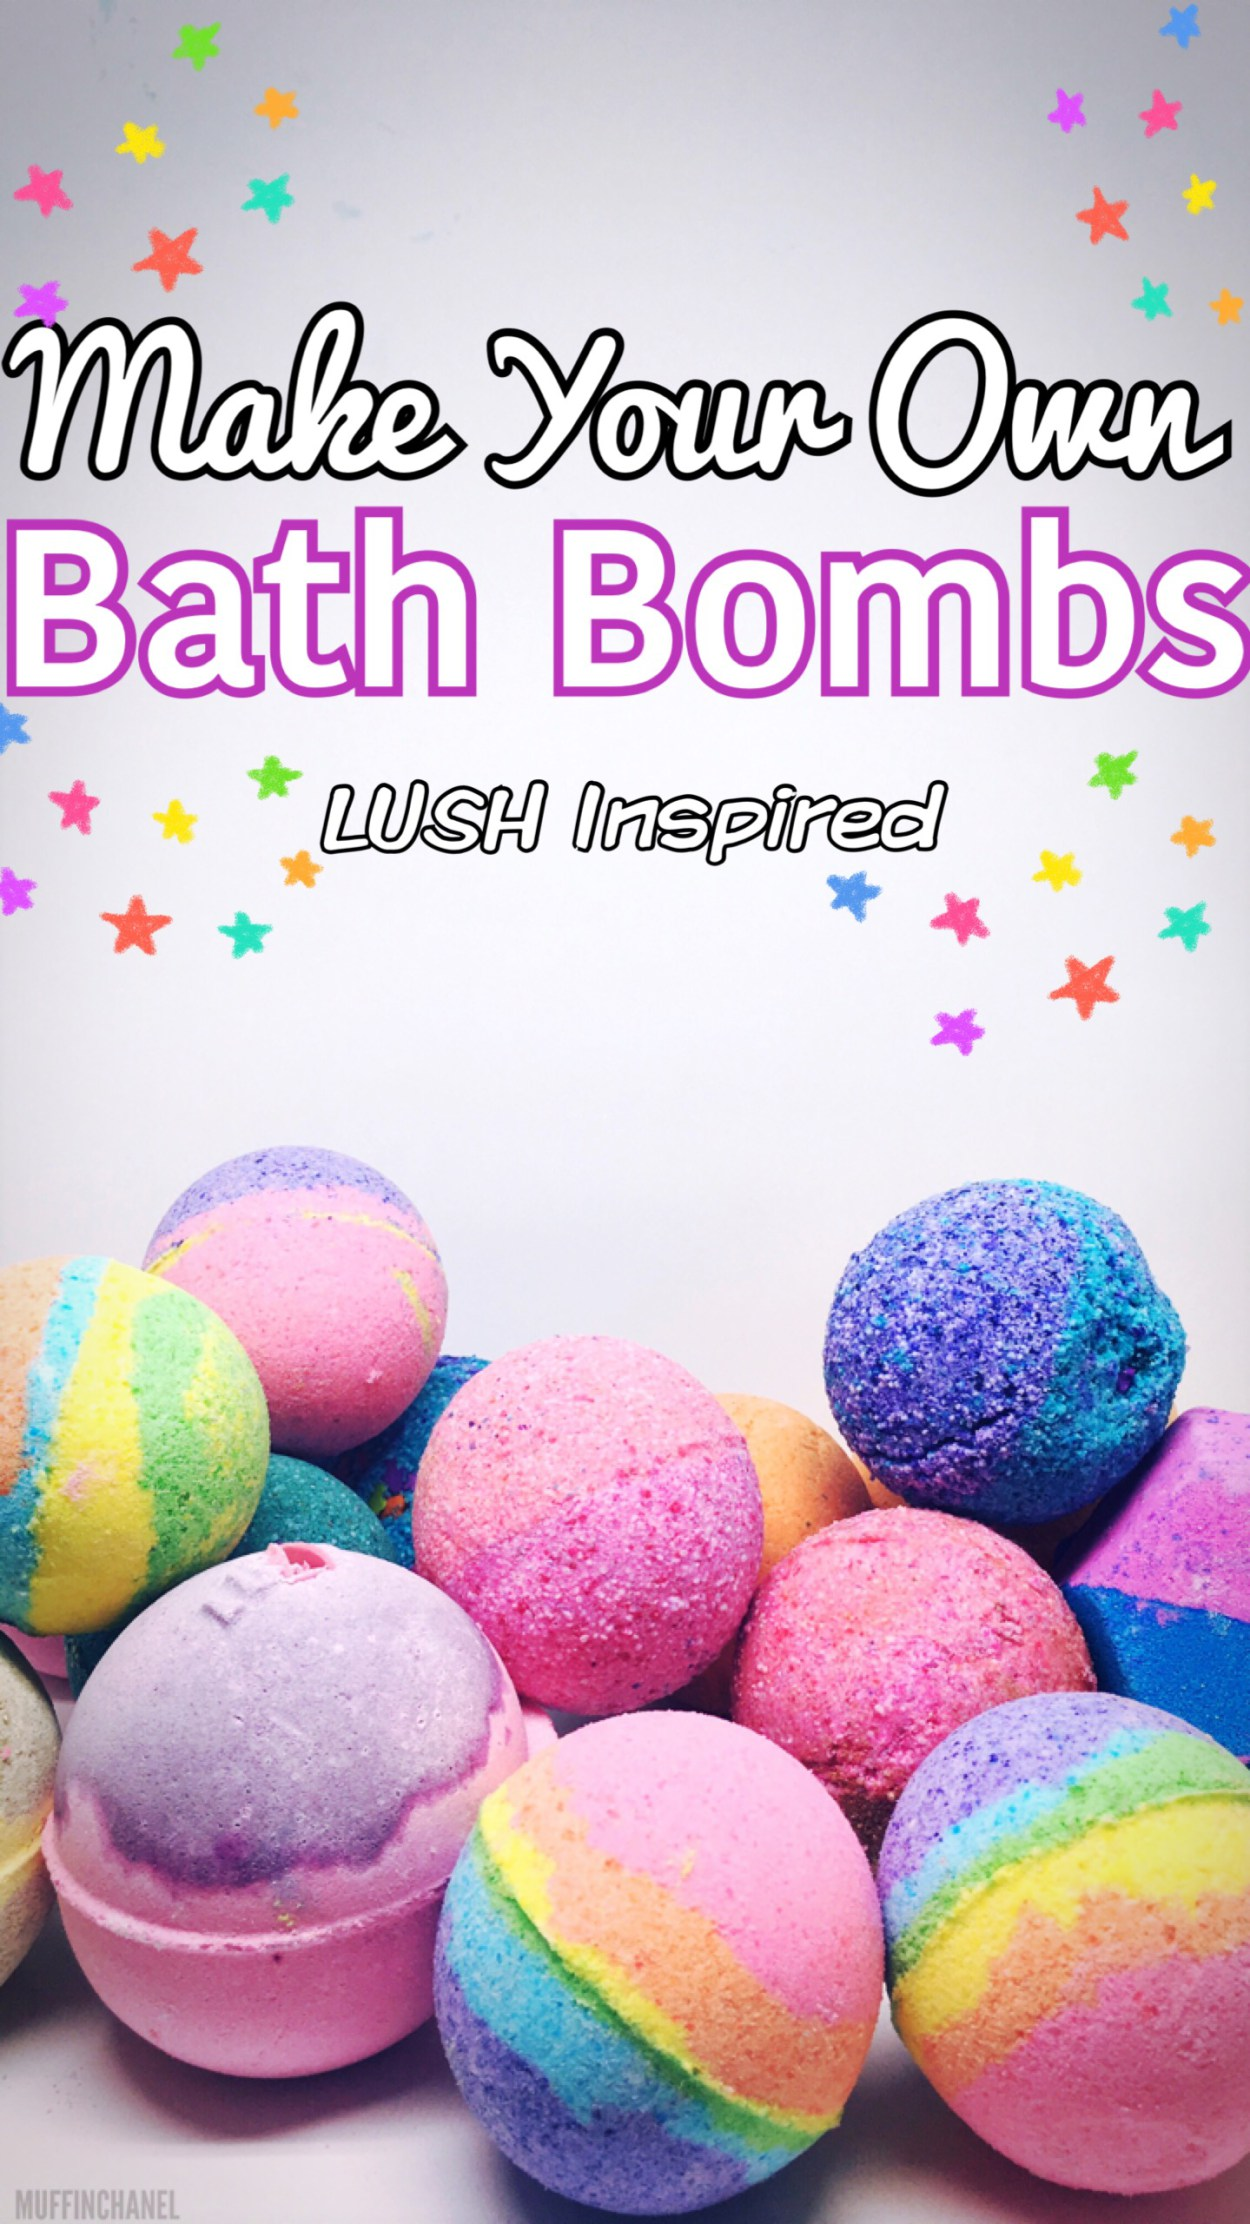 Lush Inspired Bath Bombs